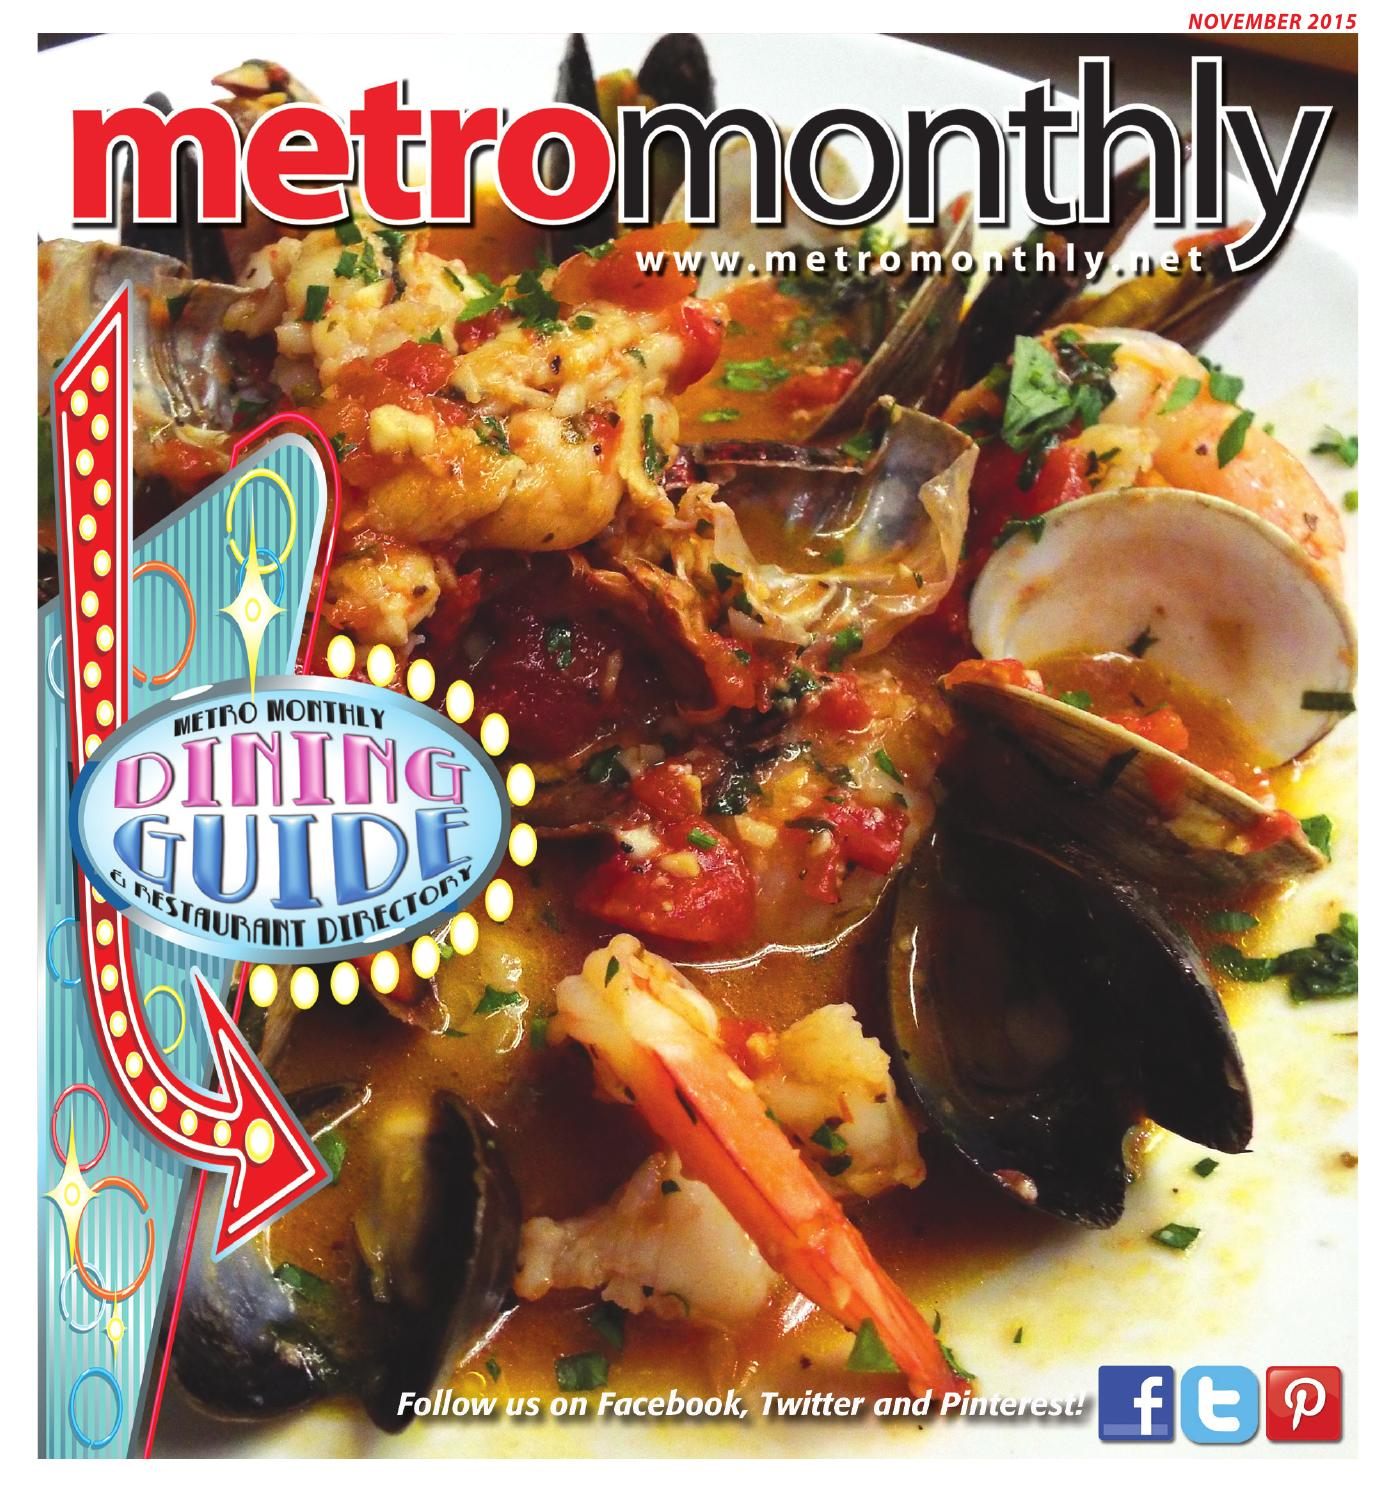 Metro Monthly NOV 2015 by Metro Monthly issuu